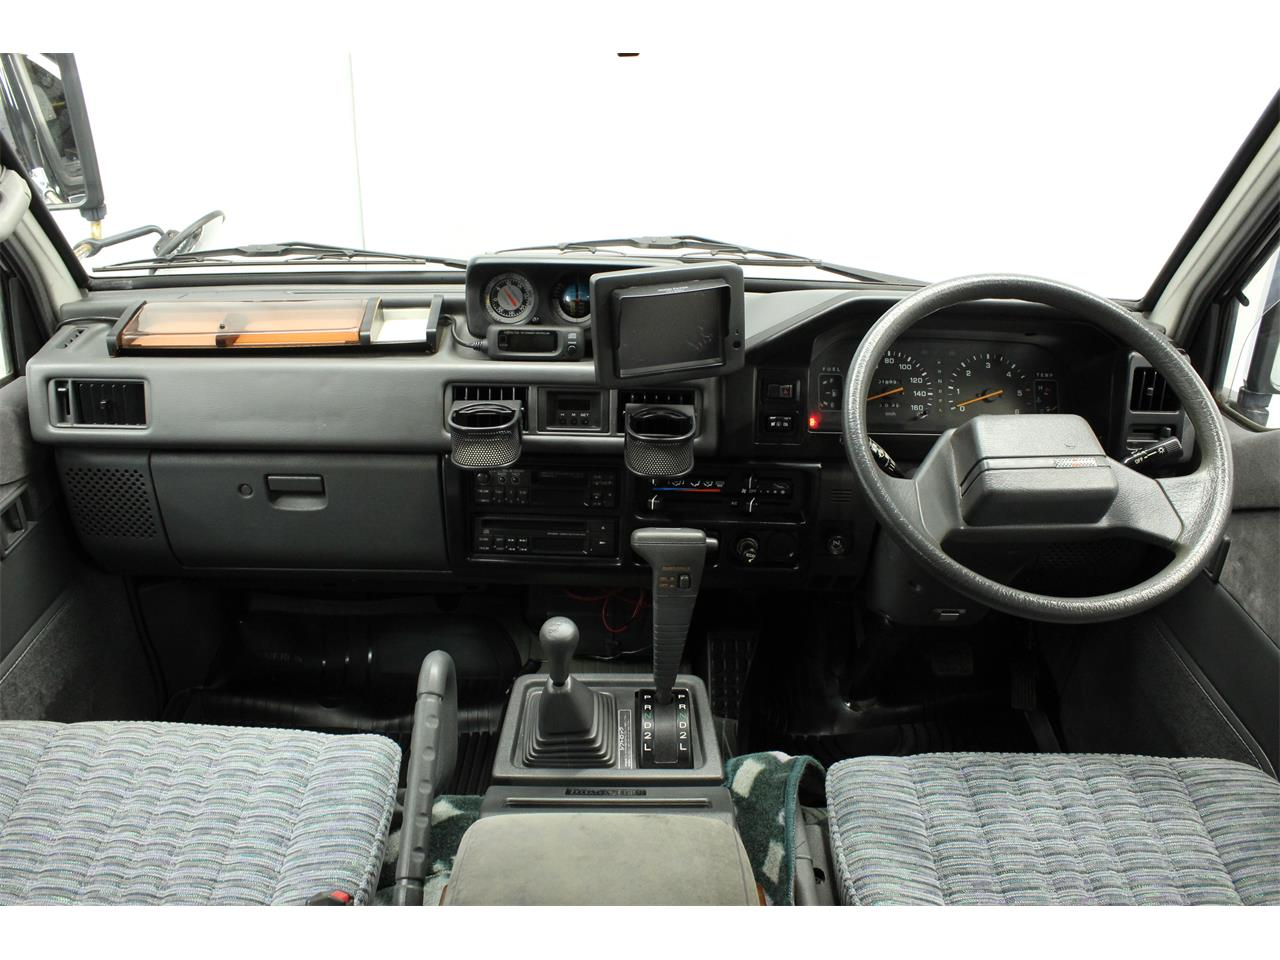 1992 Mitsubishi Delica for sale in Christiansburg, VA – photo 16